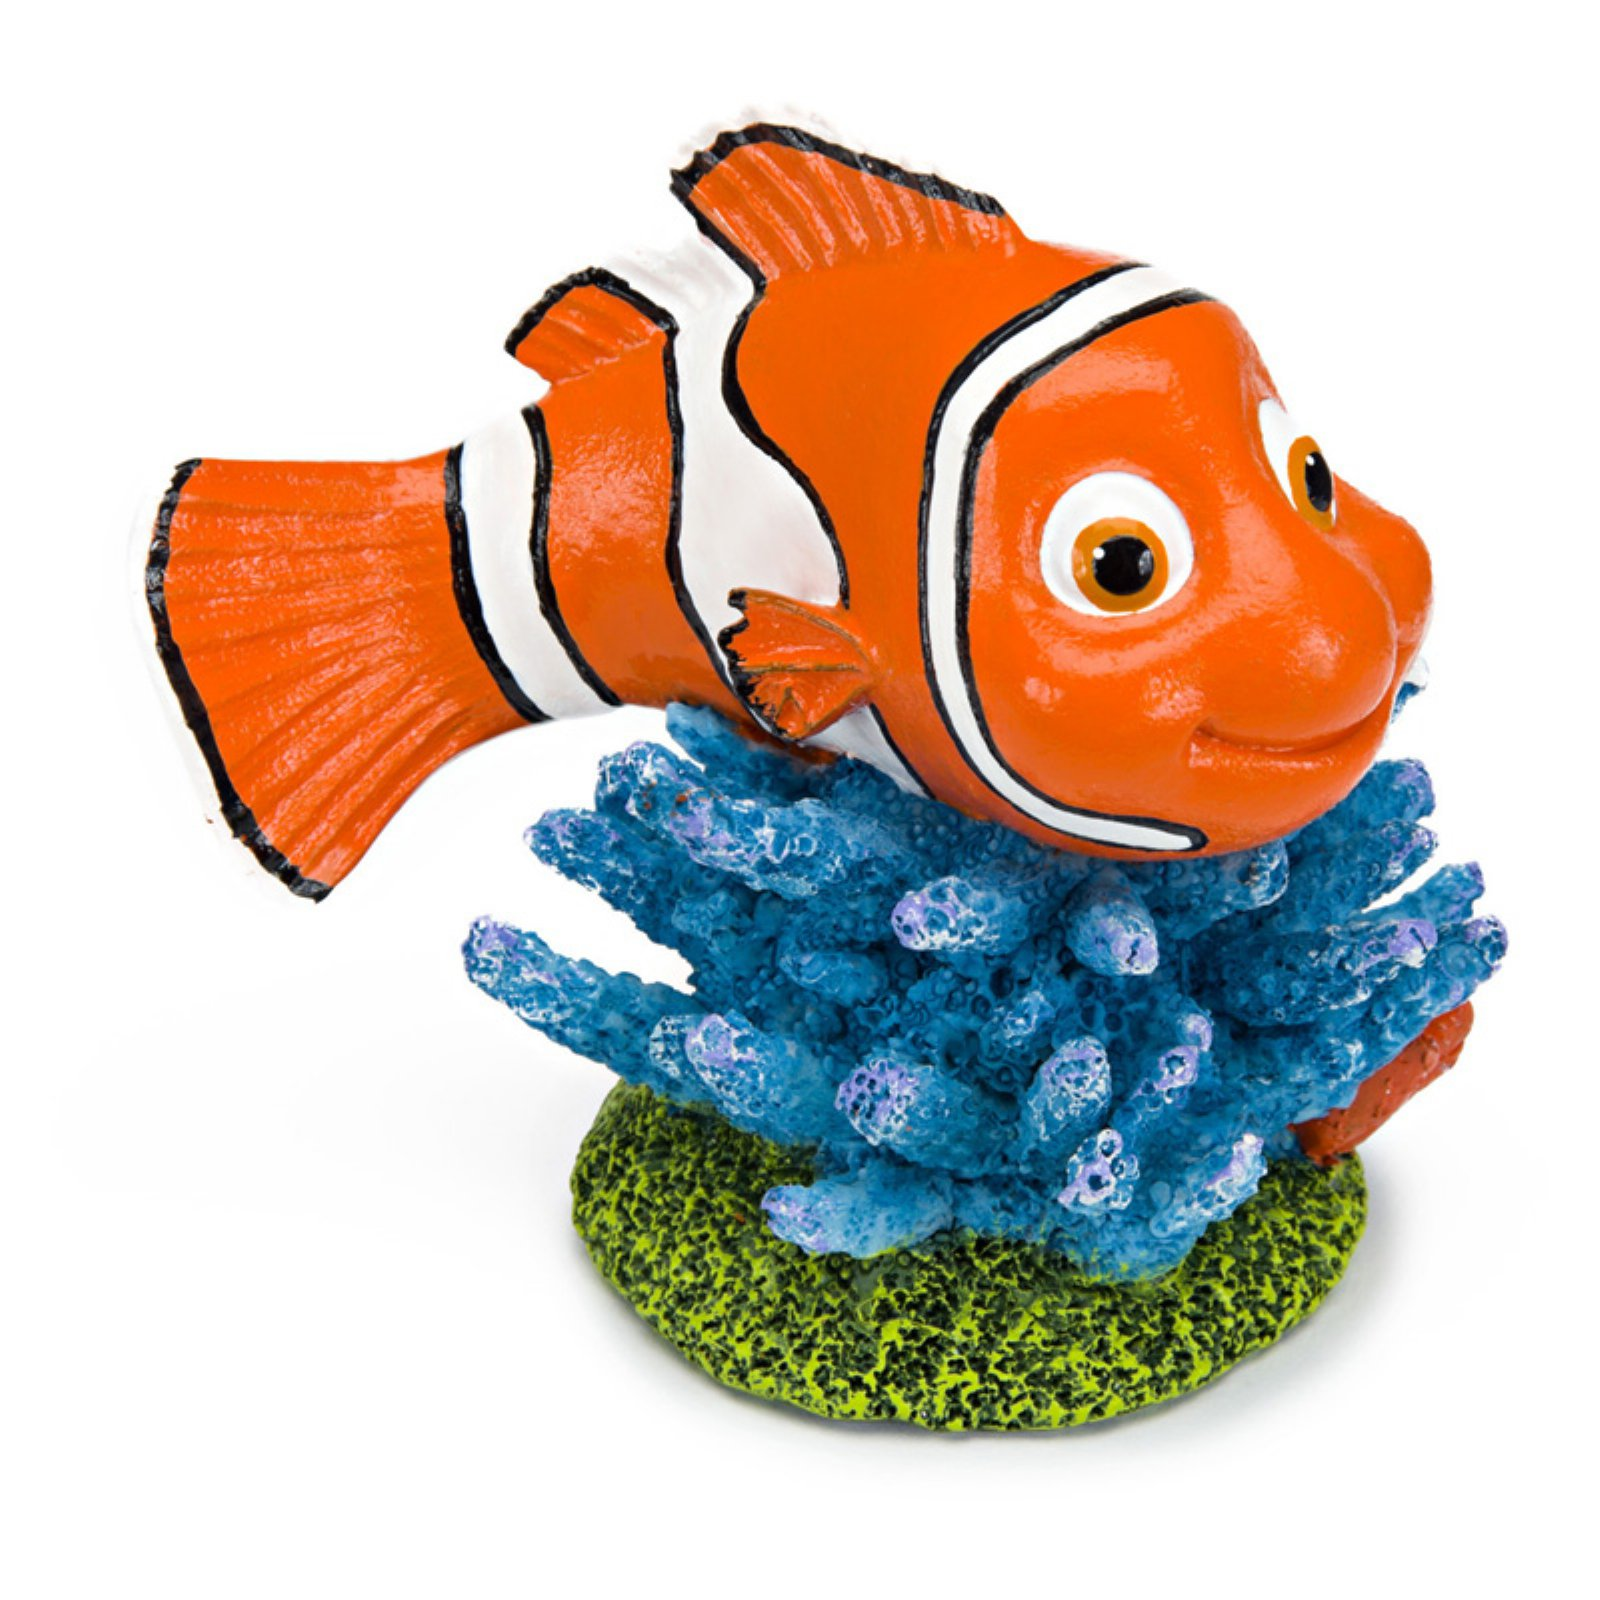 Penn Plax Finding Nemo on Coral 3.5 in. Aquarium Ornament